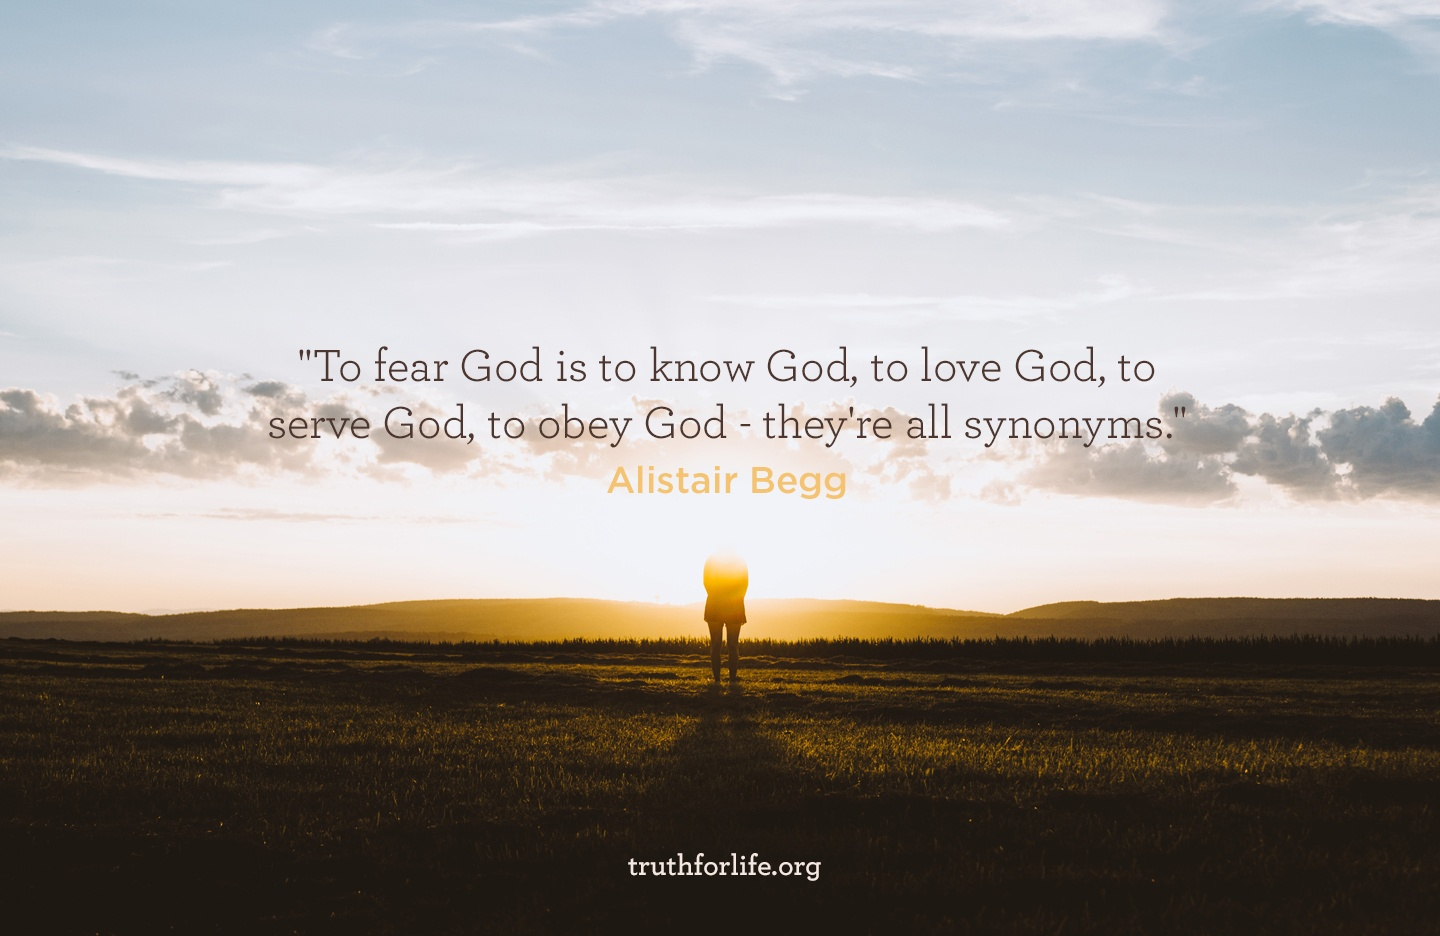 'To fear God is to know God, to love God, to serve God, to obey God - they're all synonyms.' - Alistair Begg